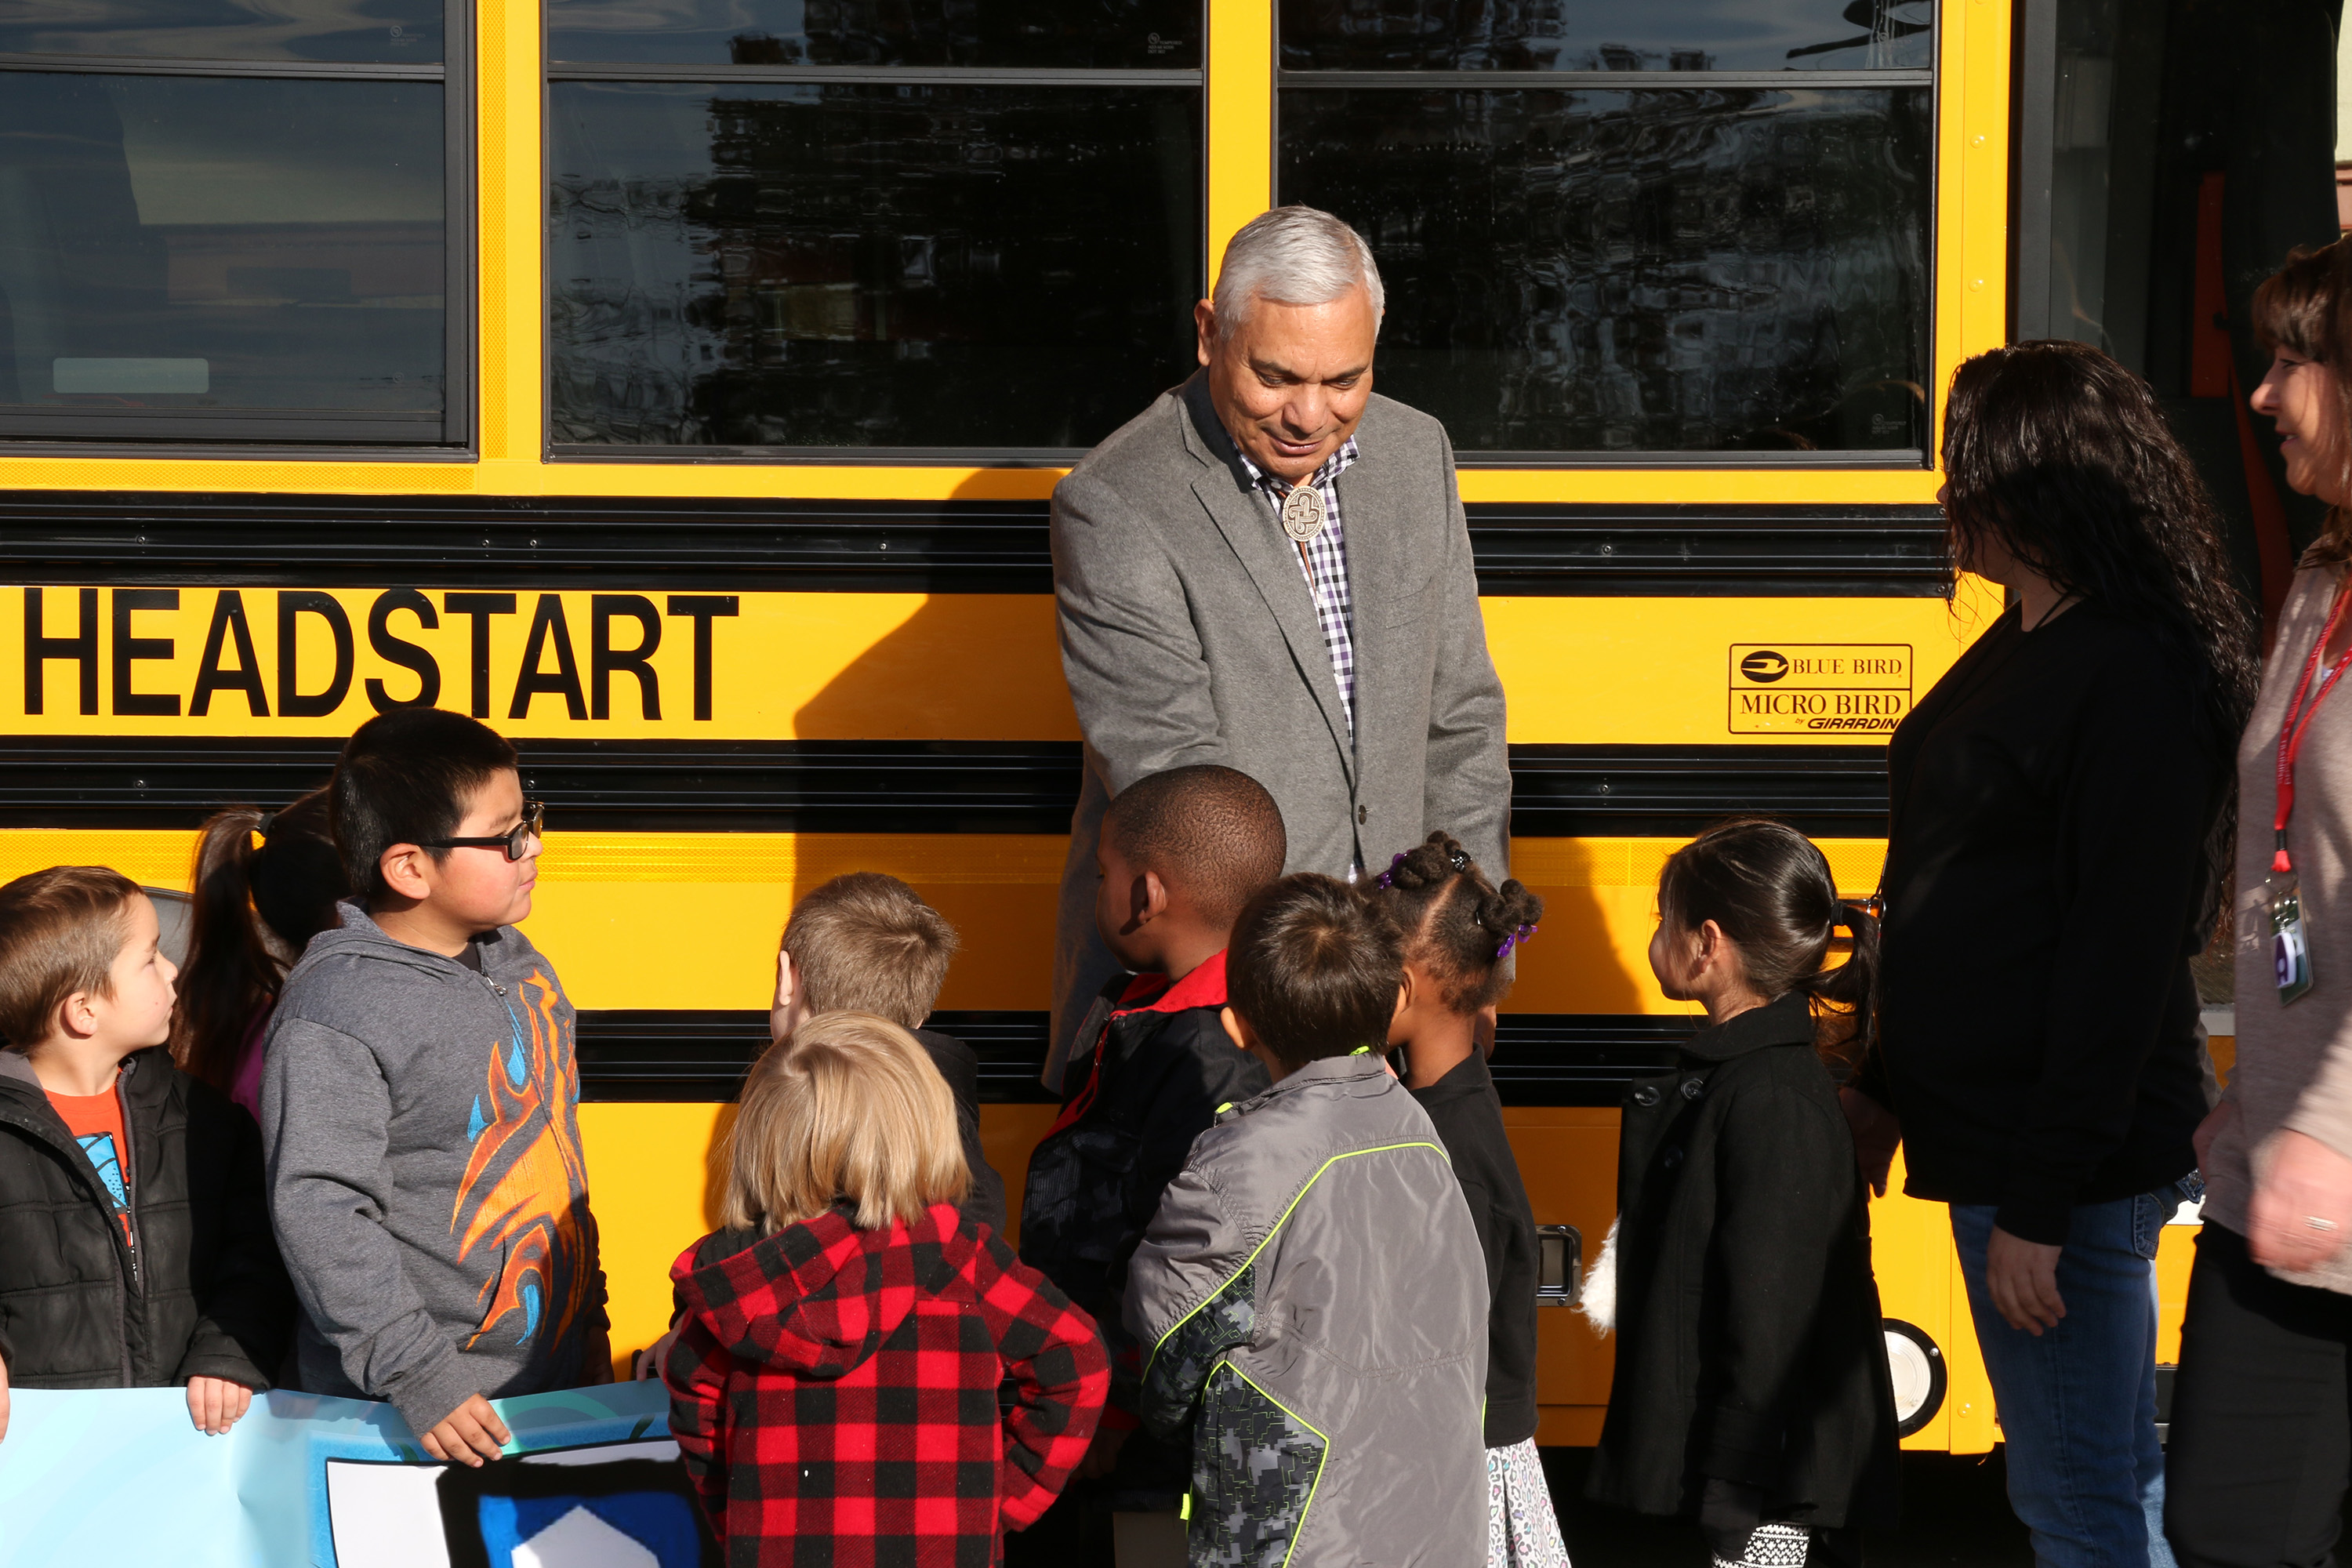 Federal Grant allows purchase of new buses for MCN Head Start